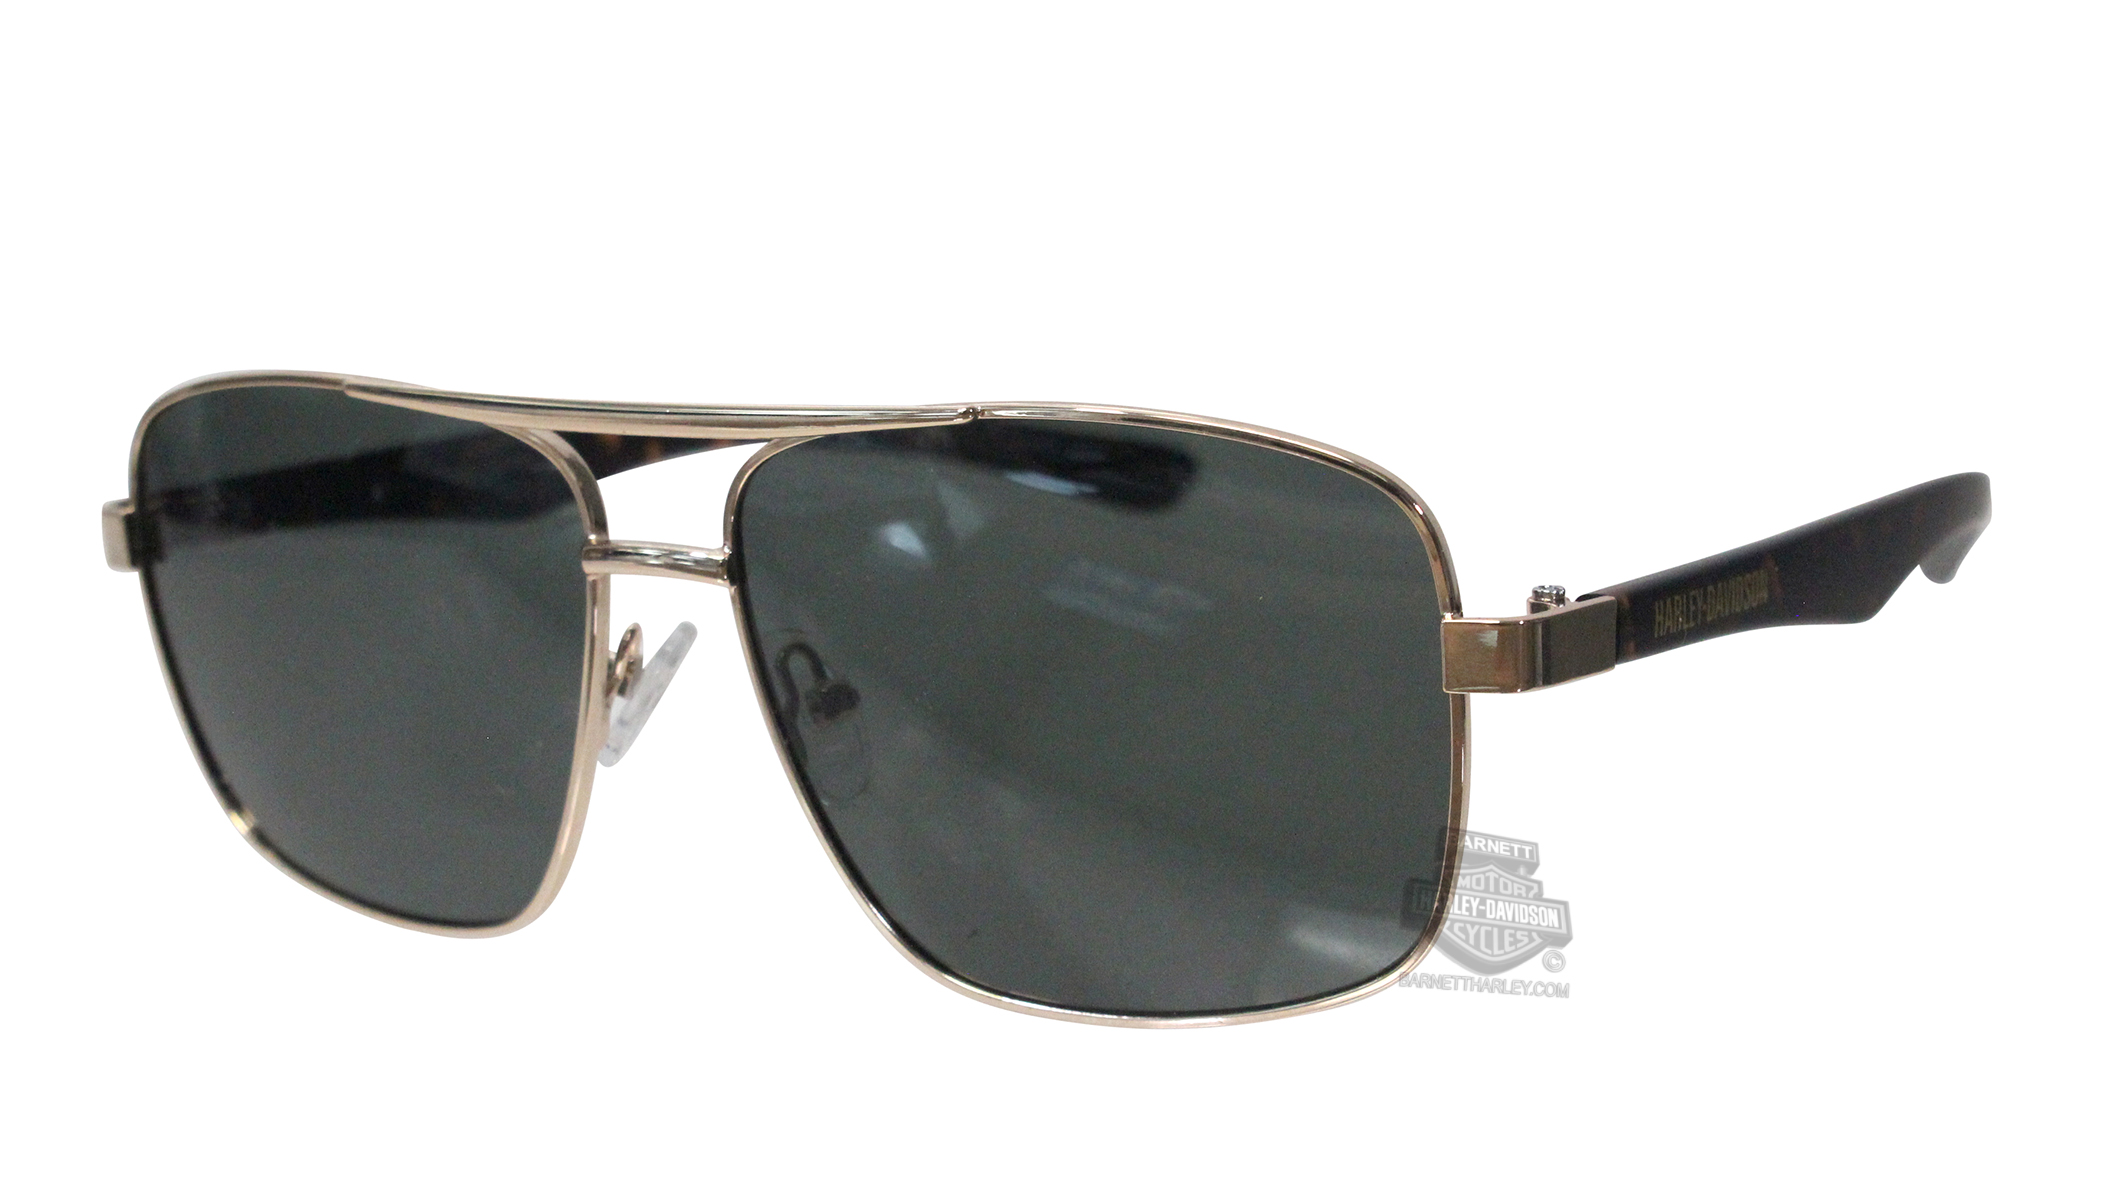 c797fd87dfc Harley-Davidson® HD0209S32R Gold Frame Green Polarized Lens Sunglasses by  Marcolin Eyewear Sunglasses